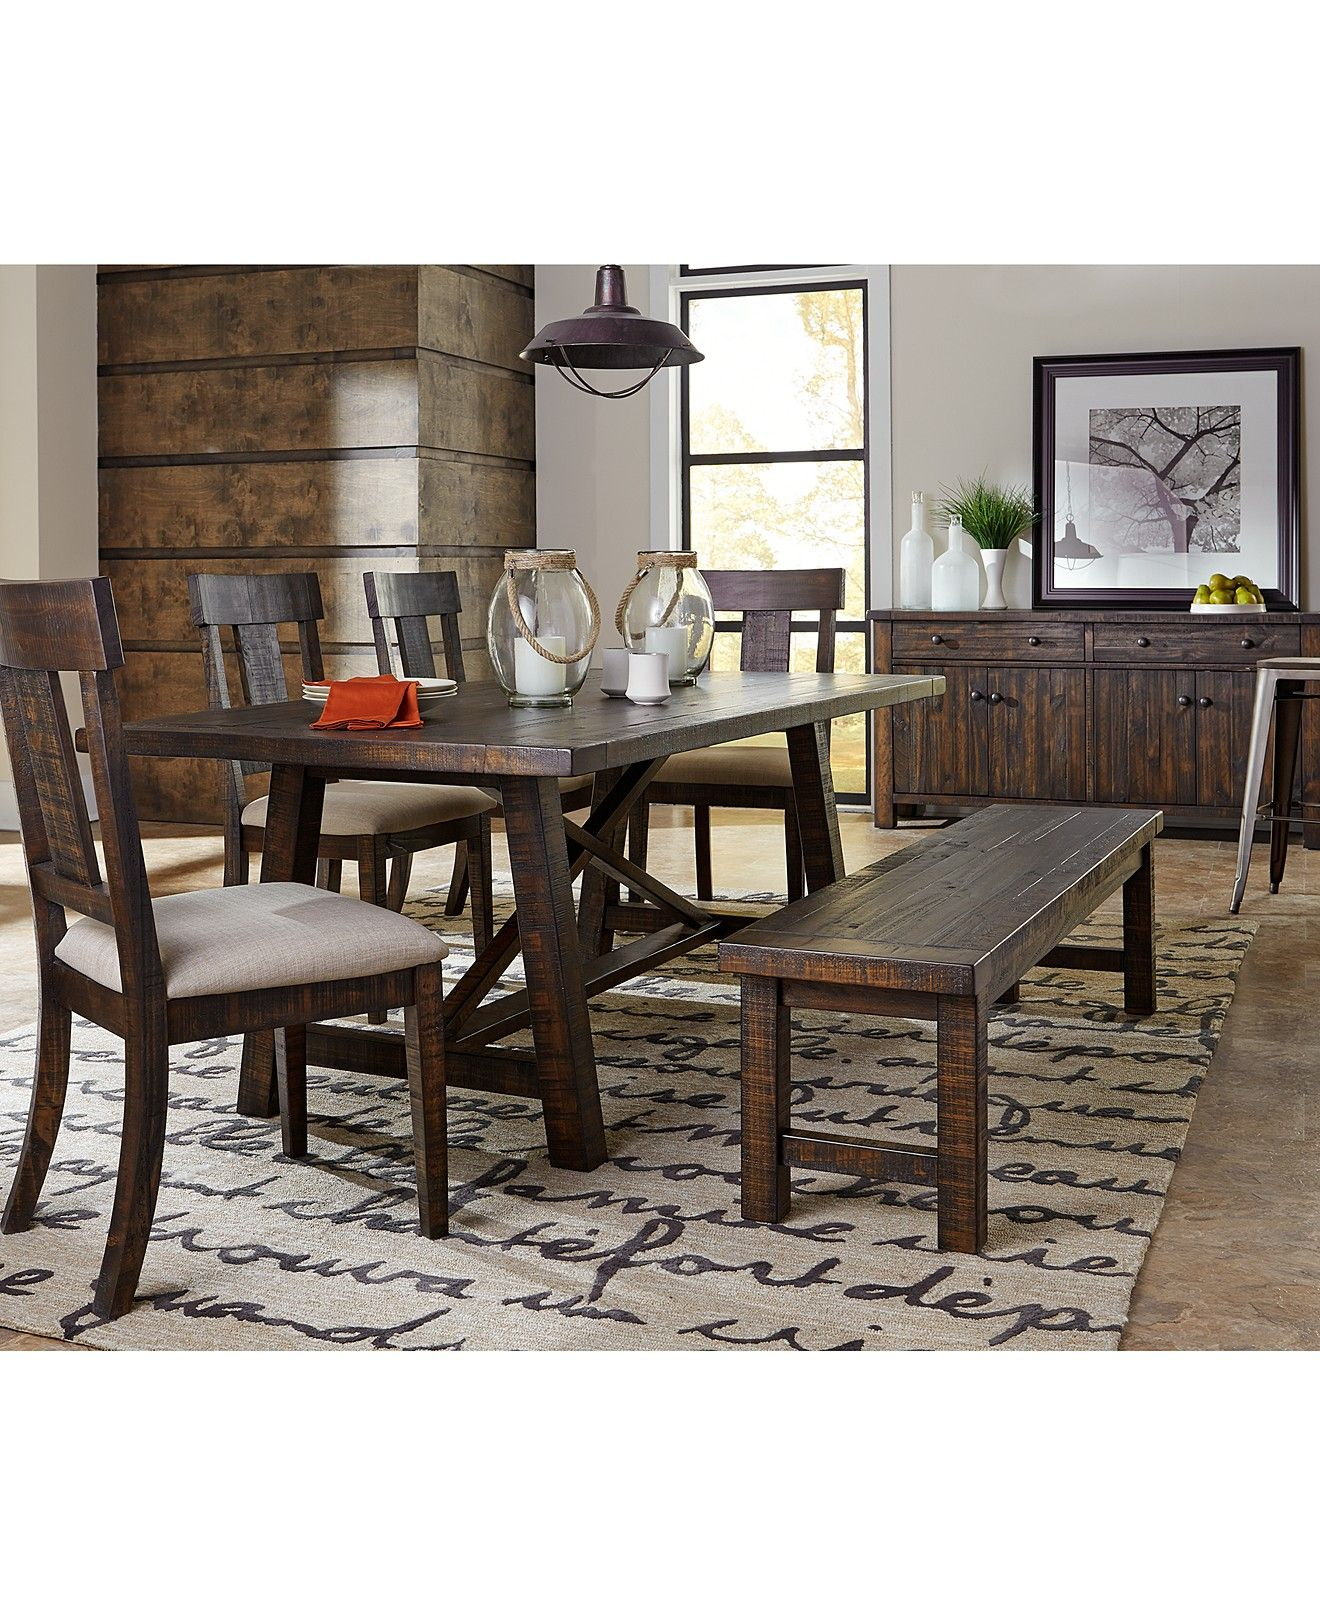 Ember 6 Piece Dining Room Furniture Set Furniture Macy s